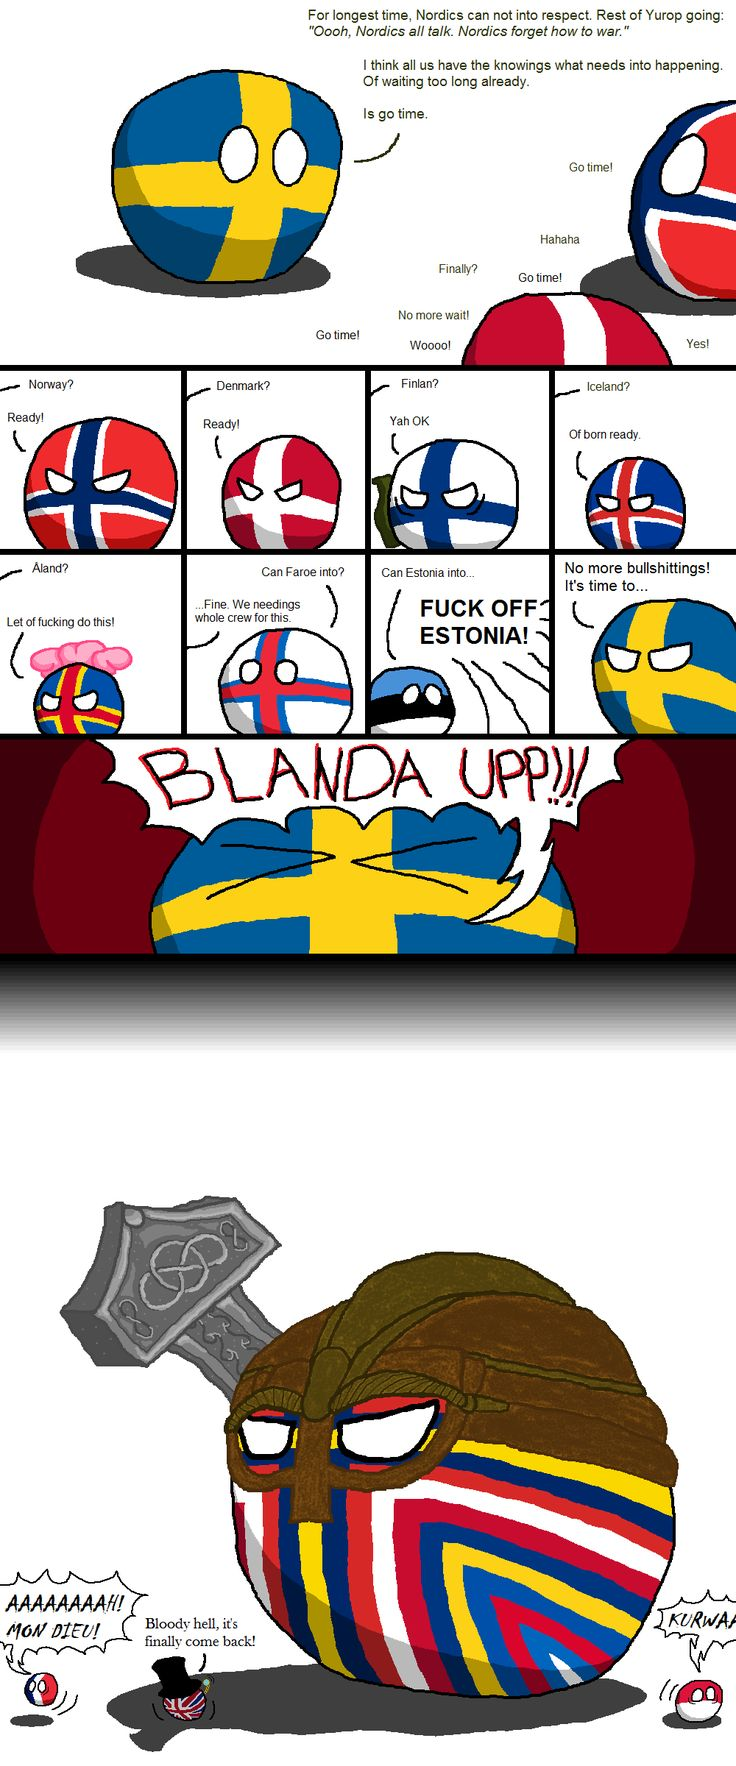 Not exactly Scandinavia and the World. I KNEW THEY WERE PLANNING SOMETHING WITH THEIR FLAGS!